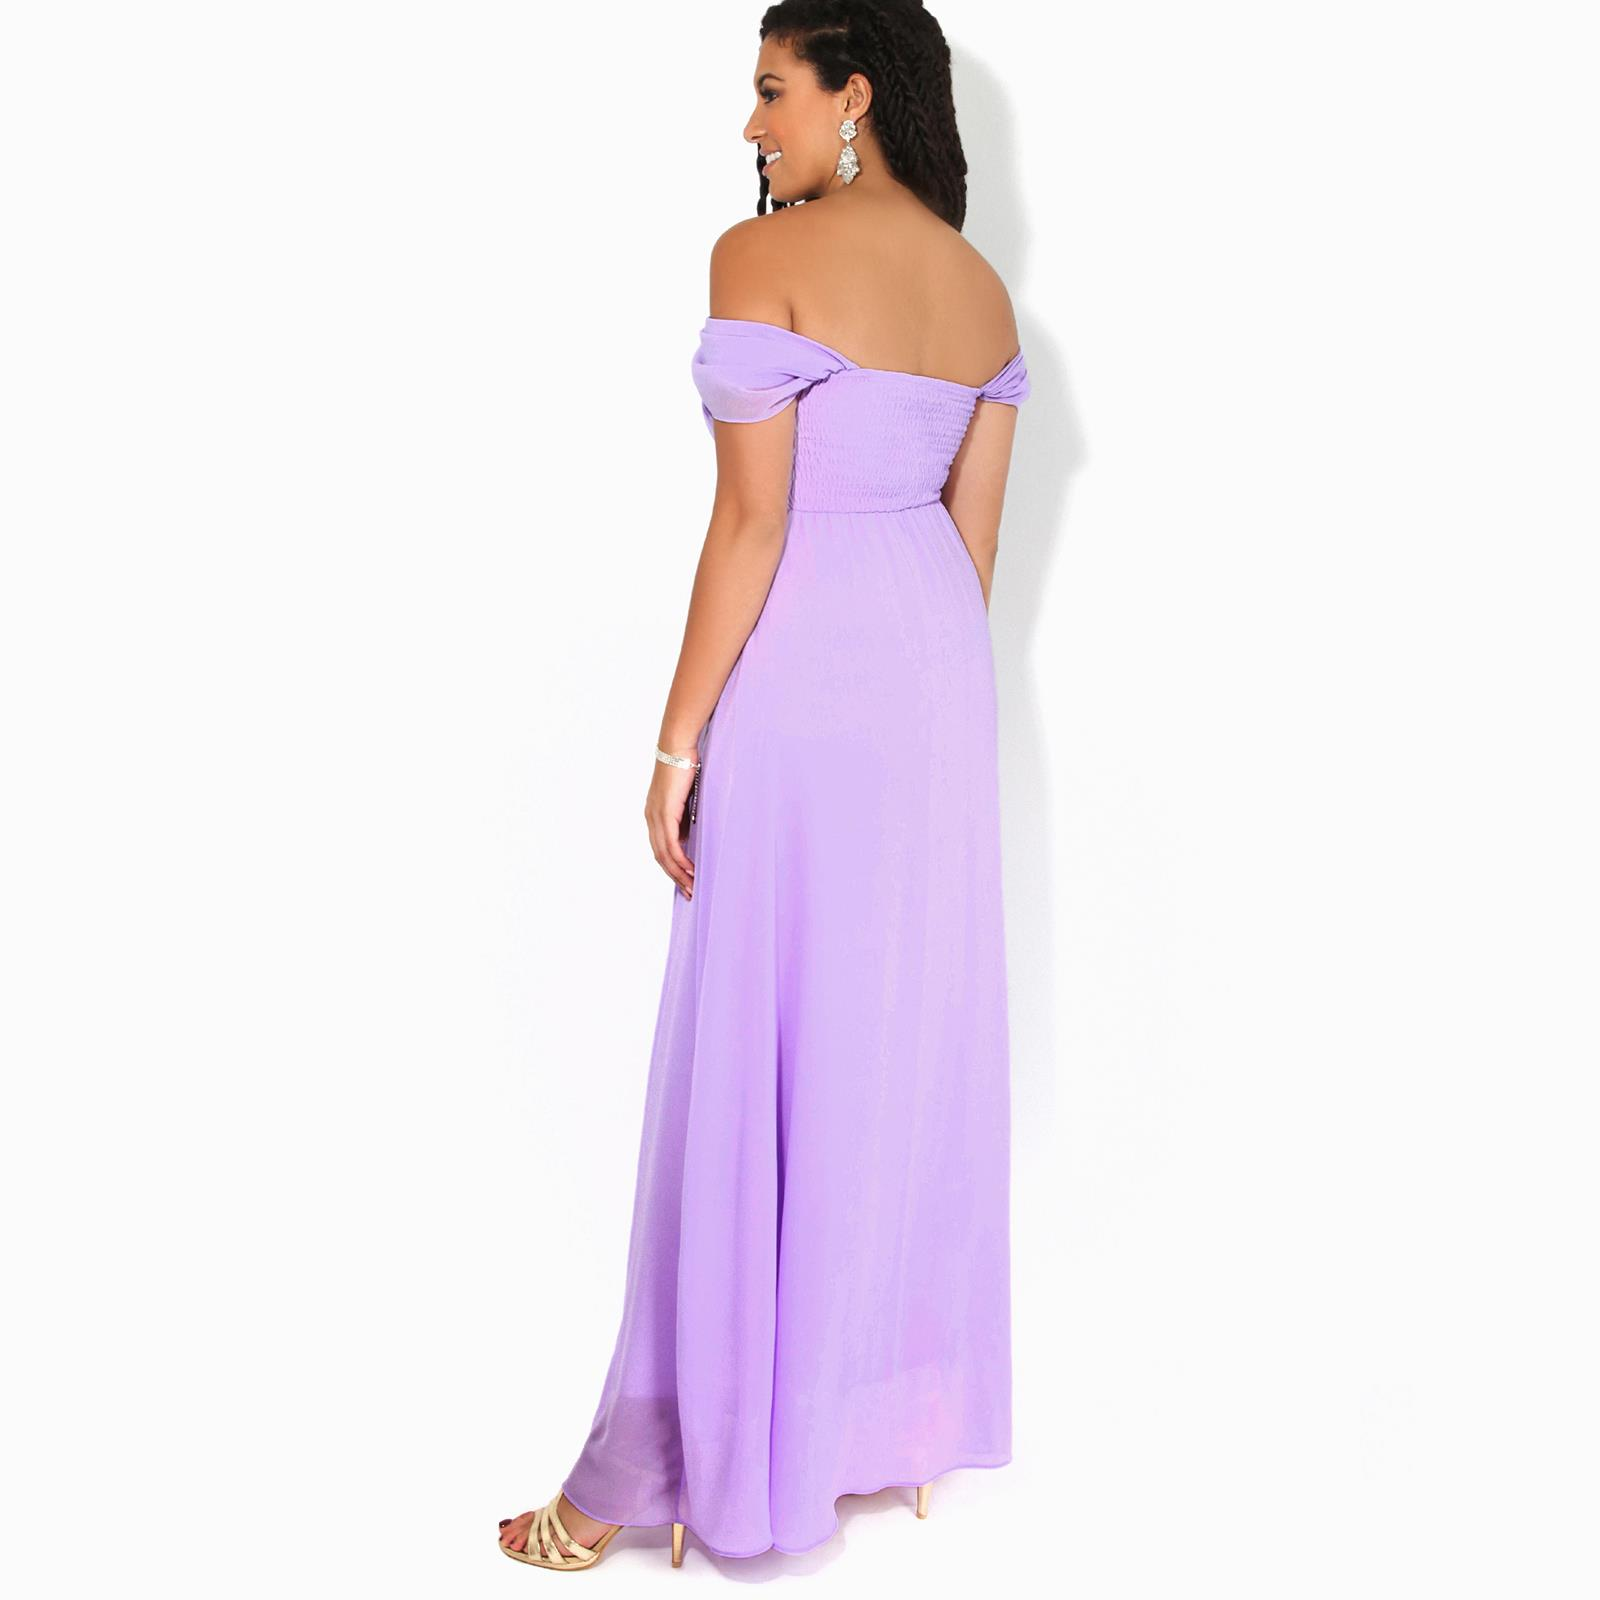 Womens-Formal-Evening-Wedding-Maxi-Prom-Dress-Long-On-Off-Shoulder-Ball-Gown thumbnail 29